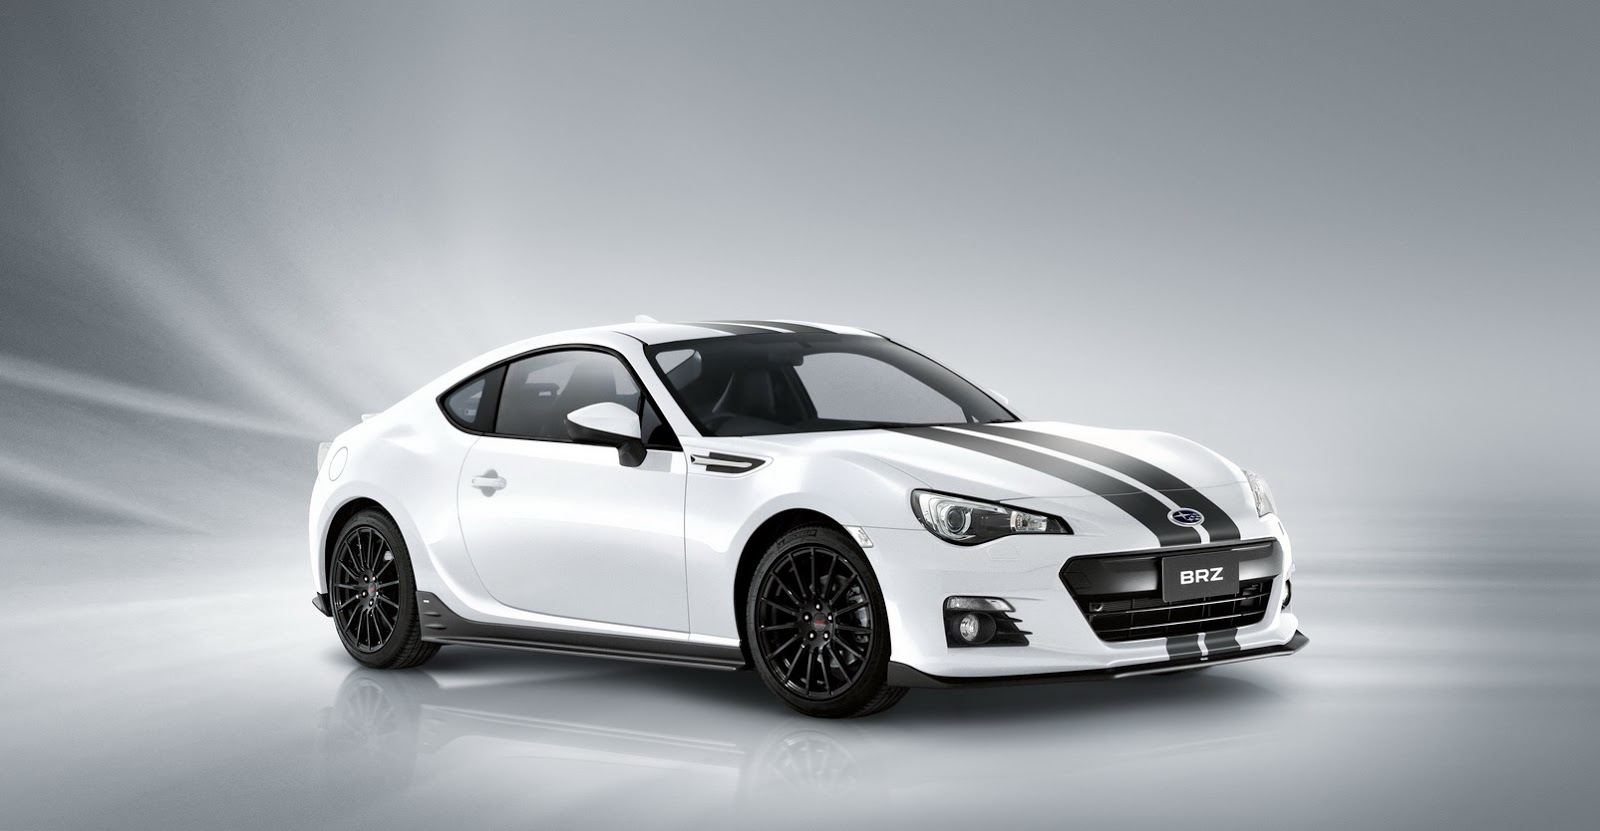 White Goods Australia Subaru Gives Brz A Striped Special Edition With Sti Goods